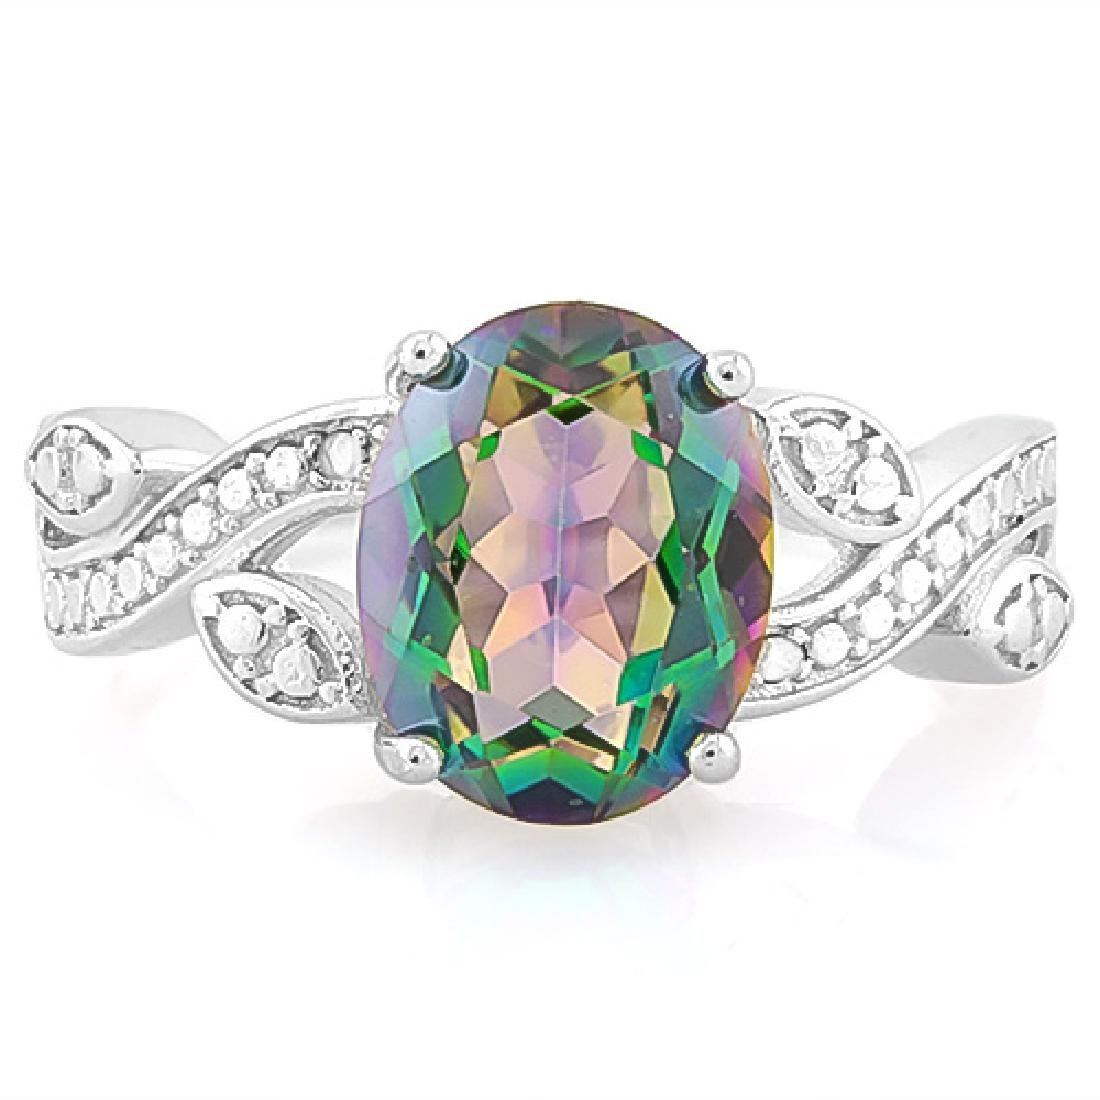 2 2/3 CARAT GREEN MYSTIC GEMSTONE & DIAMOND 925 STERLIN